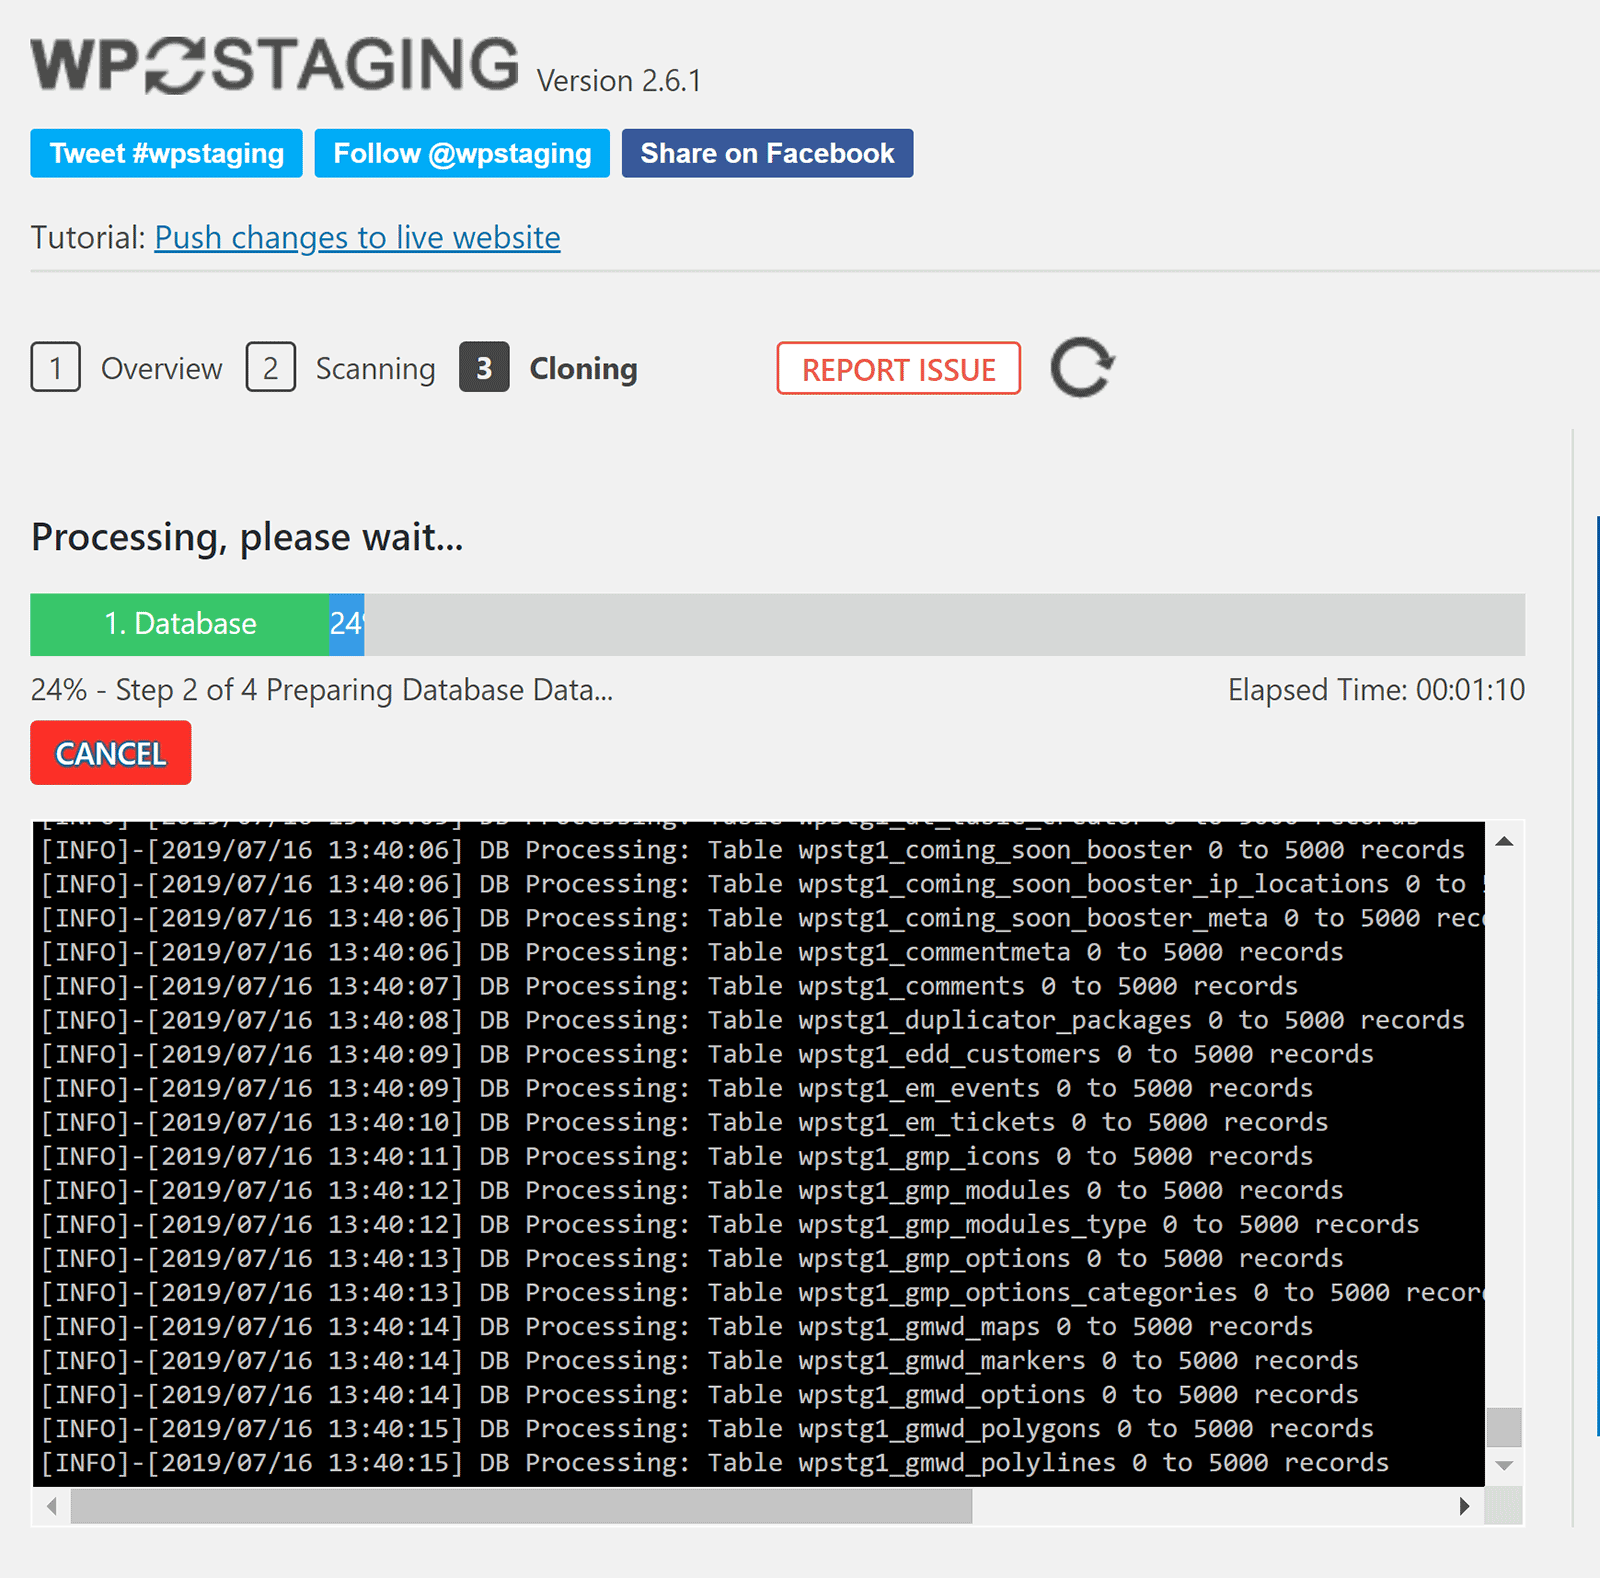 WP Staging Cloning